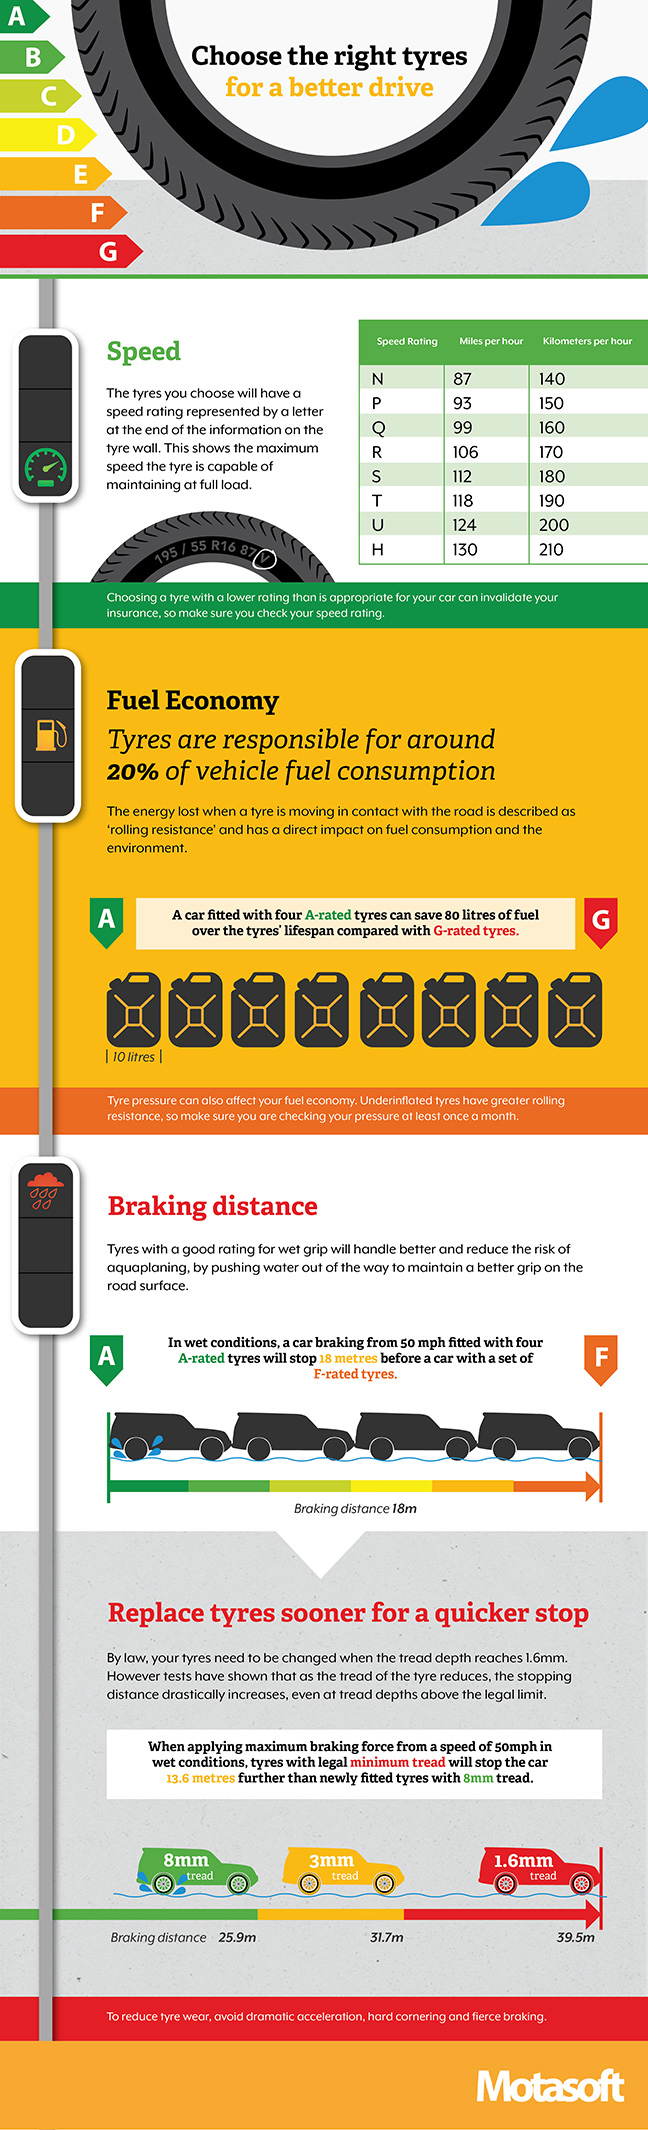 EU Tyre labelling infographic, with information on choosing the right tyres.